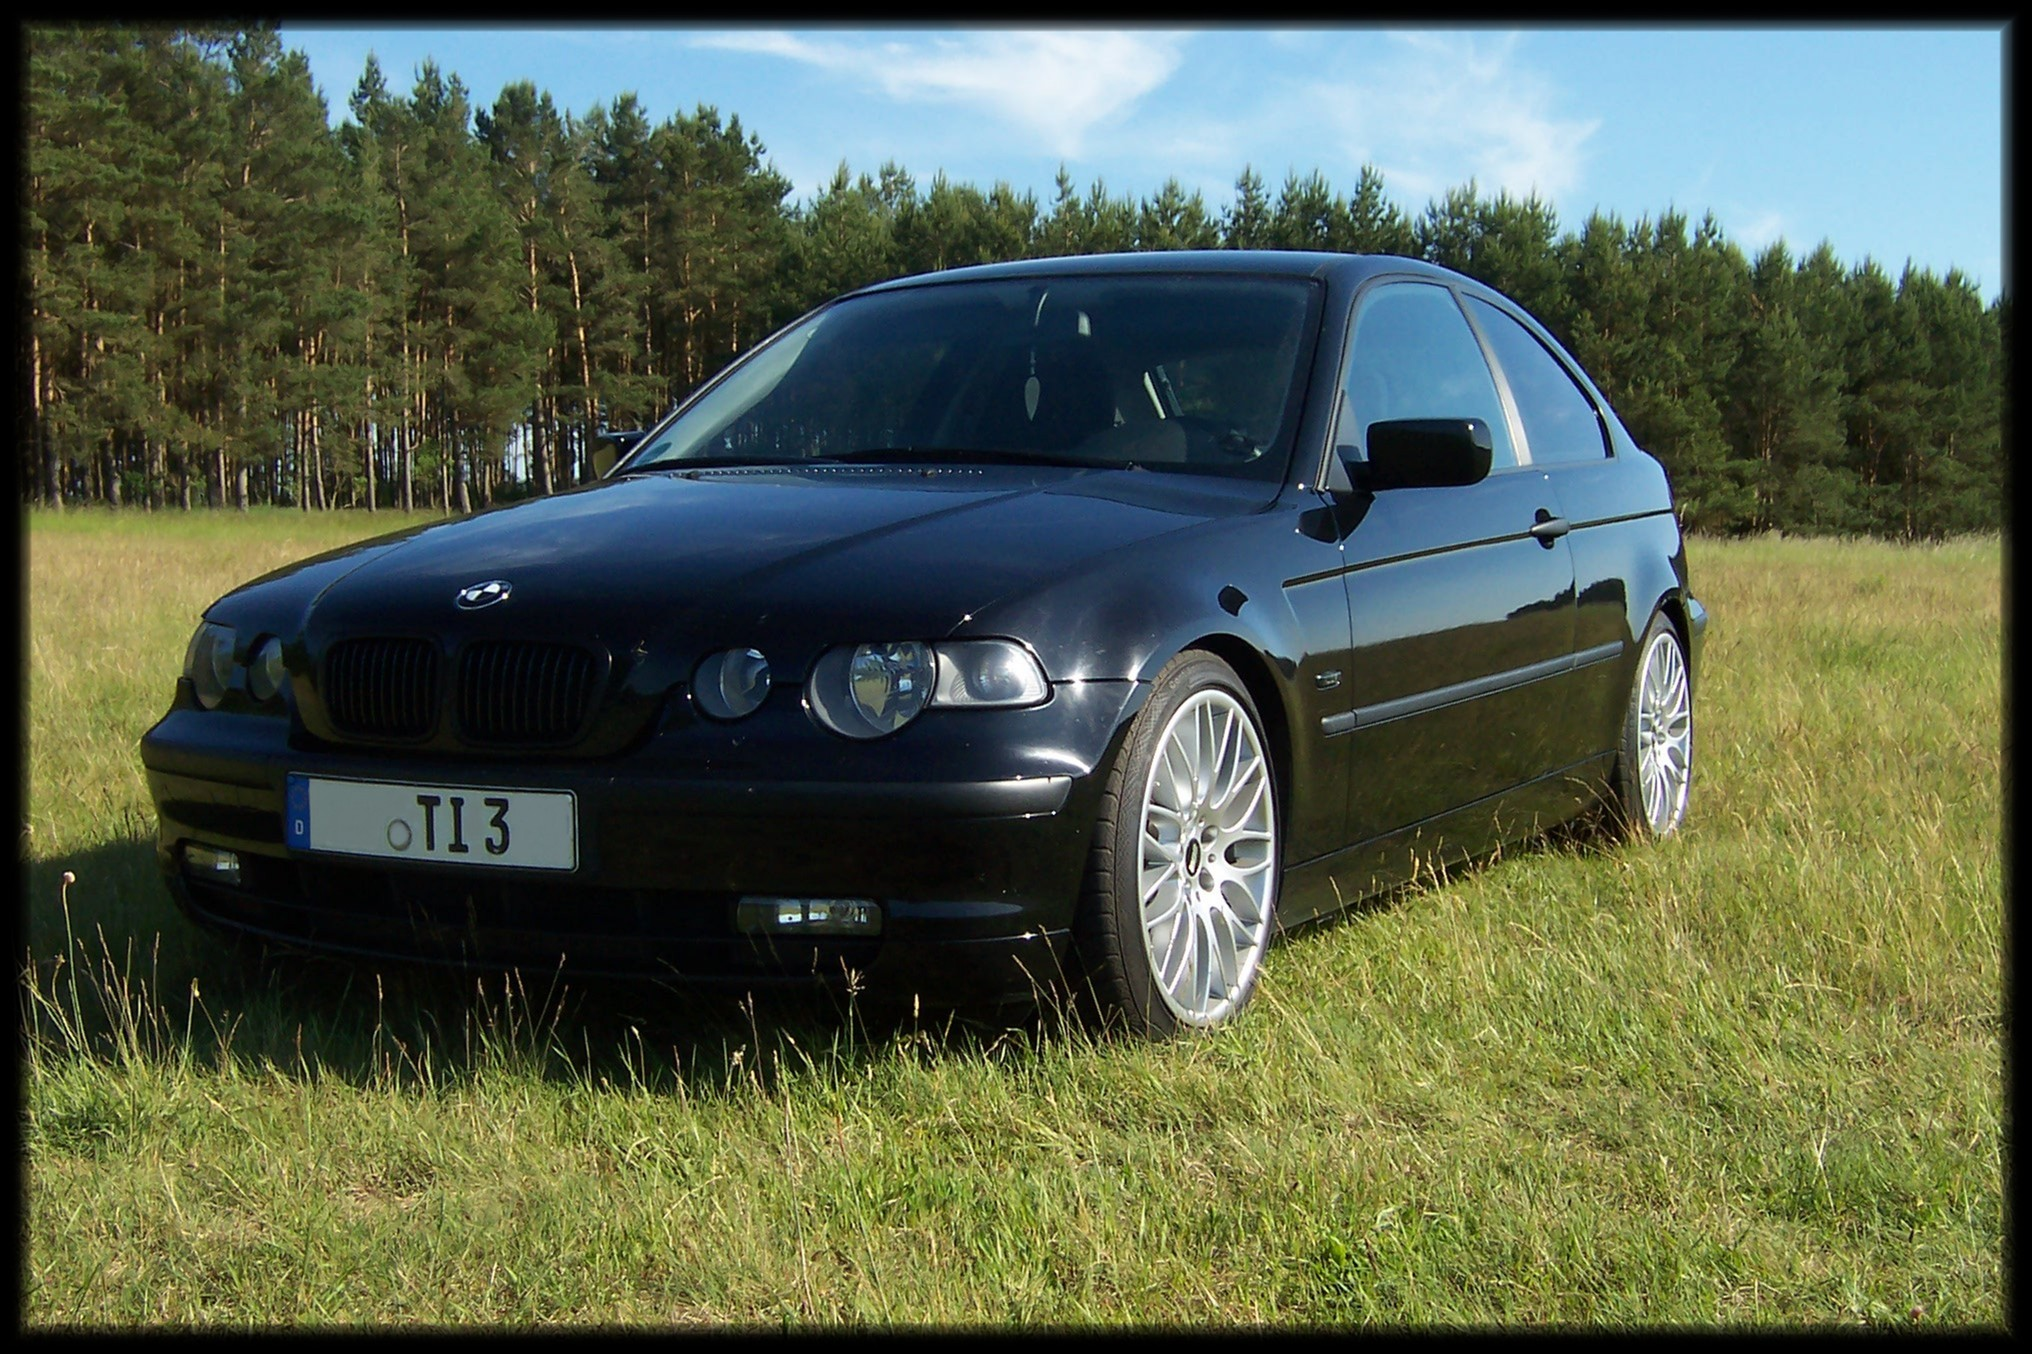 06 2011 02 by bmw e46 compact on deviantart. Black Bedroom Furniture Sets. Home Design Ideas